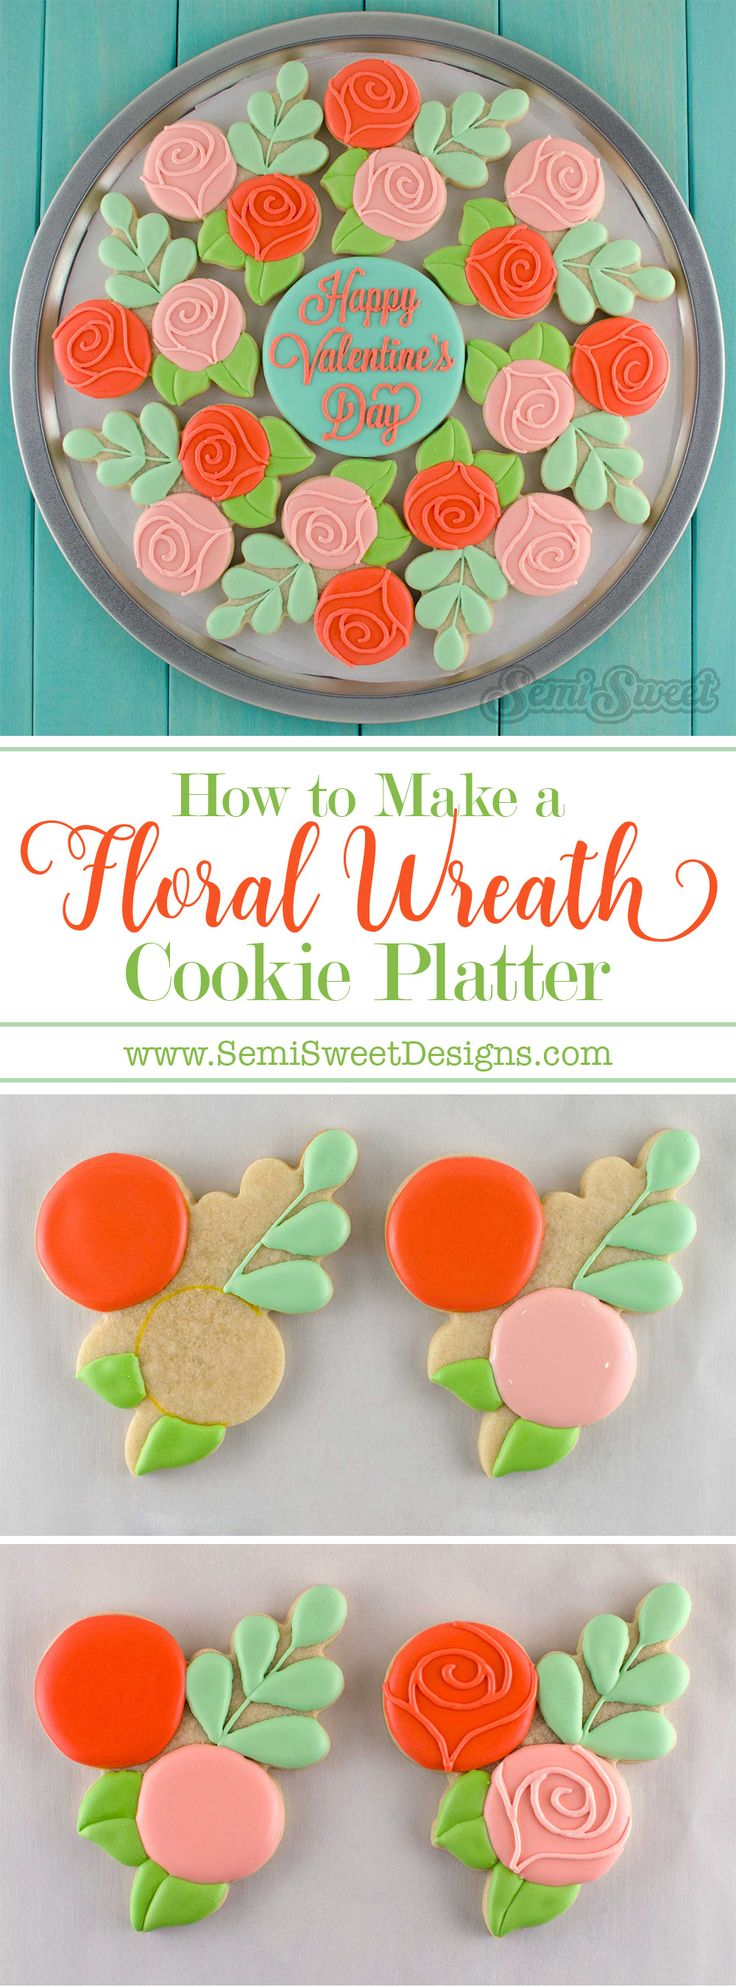 How to make a floral wreath cookie platter. Perfect for Valentine's Day or Mother's Day. Detailed tutorial, custom cookie cutter, and recipes available at SemiSweetDesigns.com